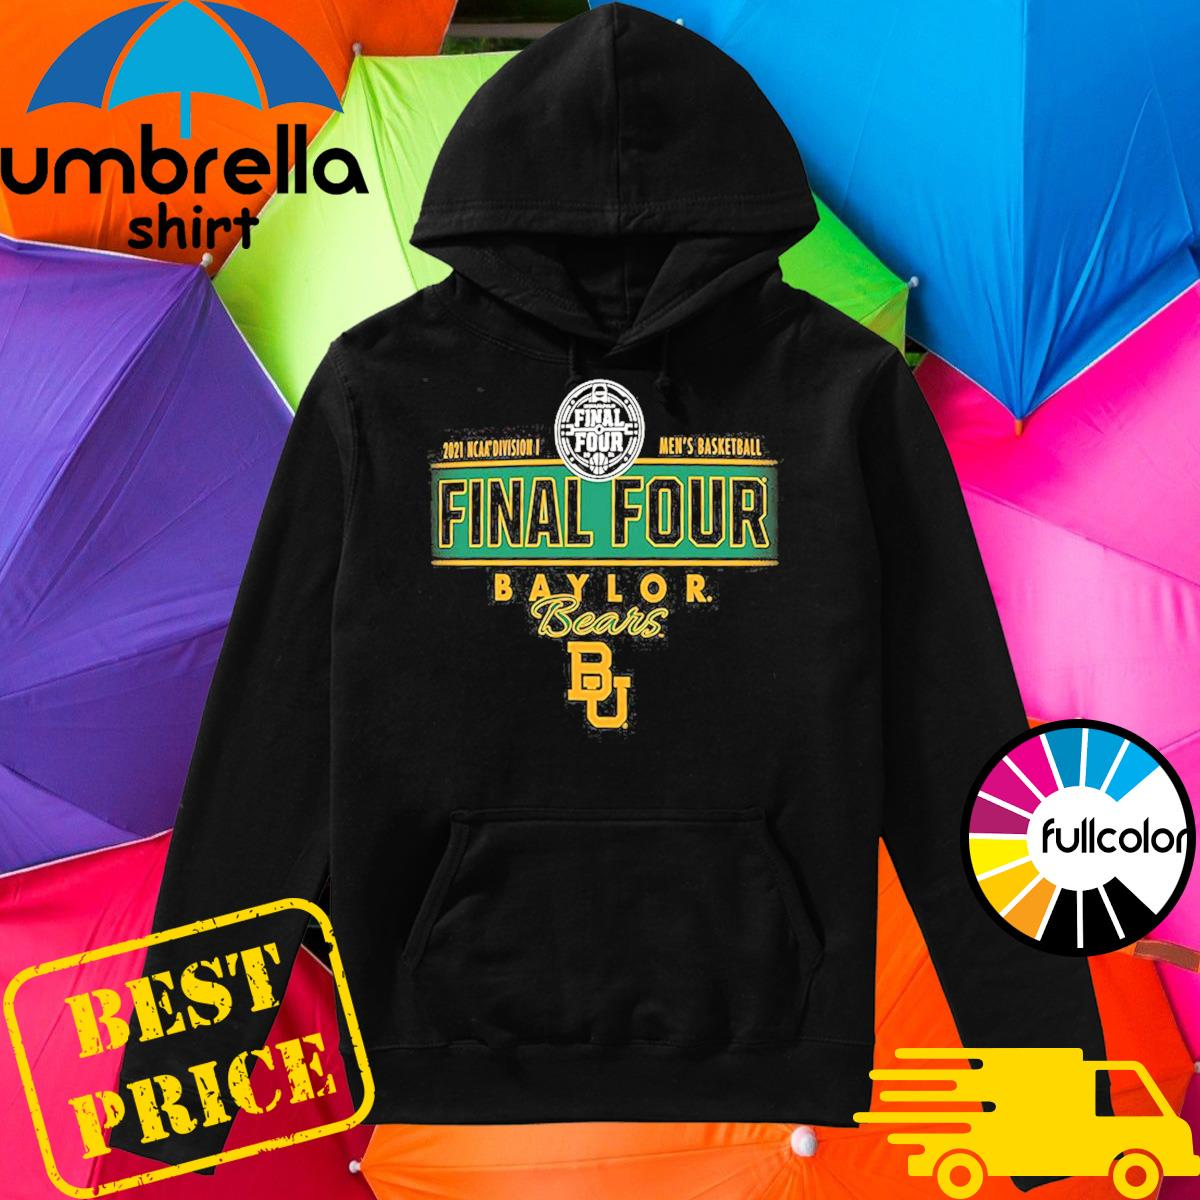 2021 NCAA Divisions Men's Basketball Final Four Baylor Bears BU Hoodie